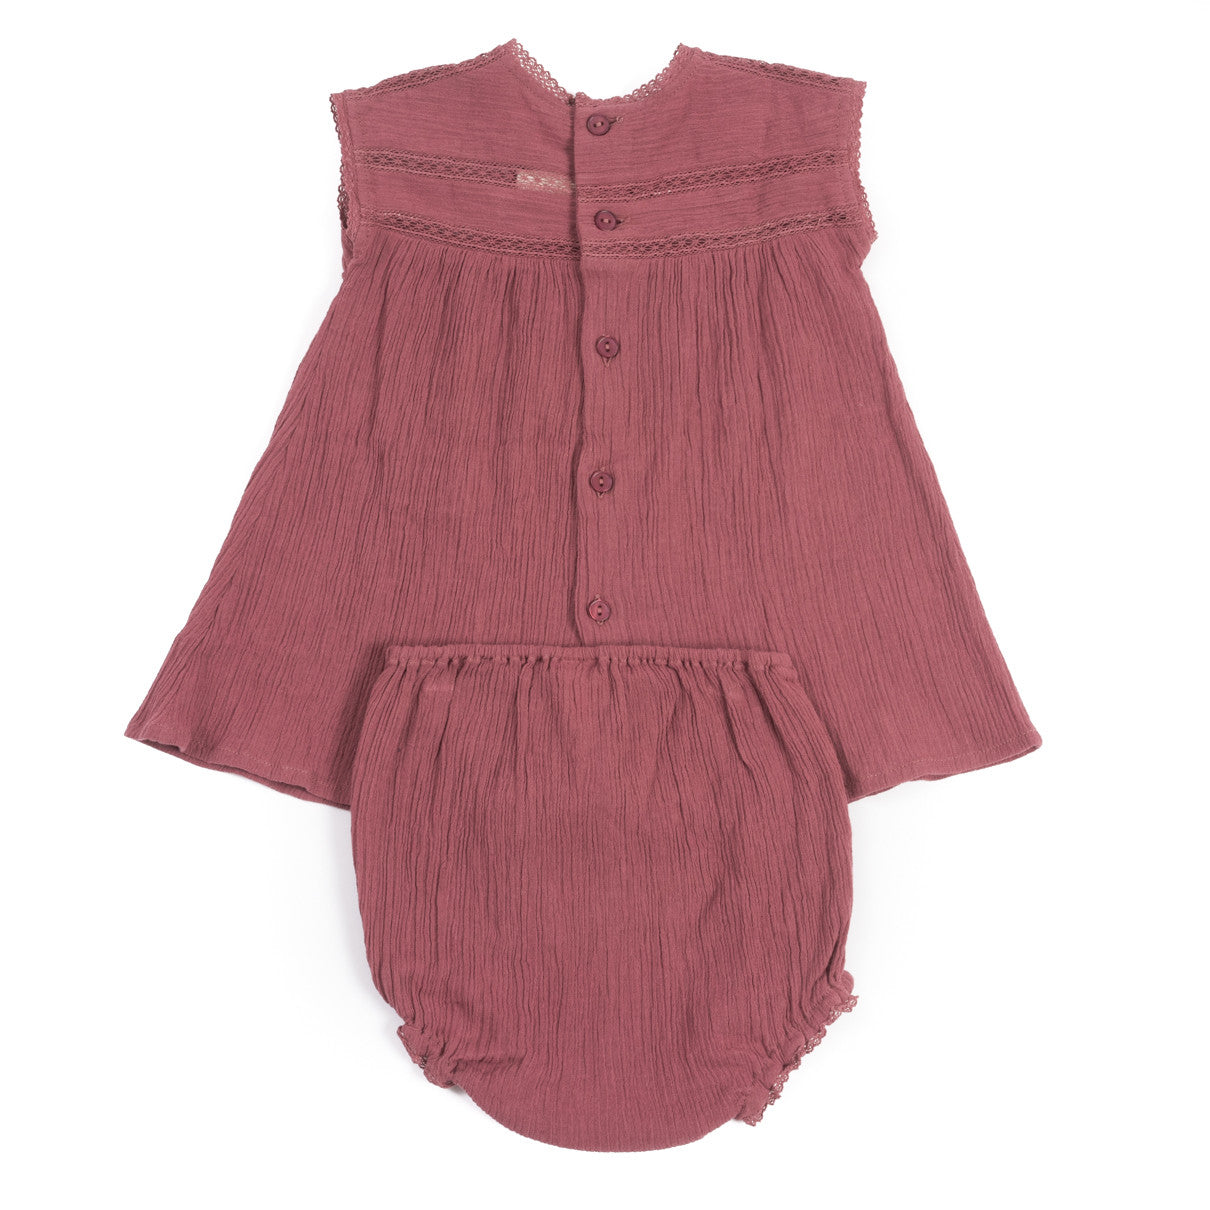 Bonton Brunette Gauze Baby Dress - Ladida